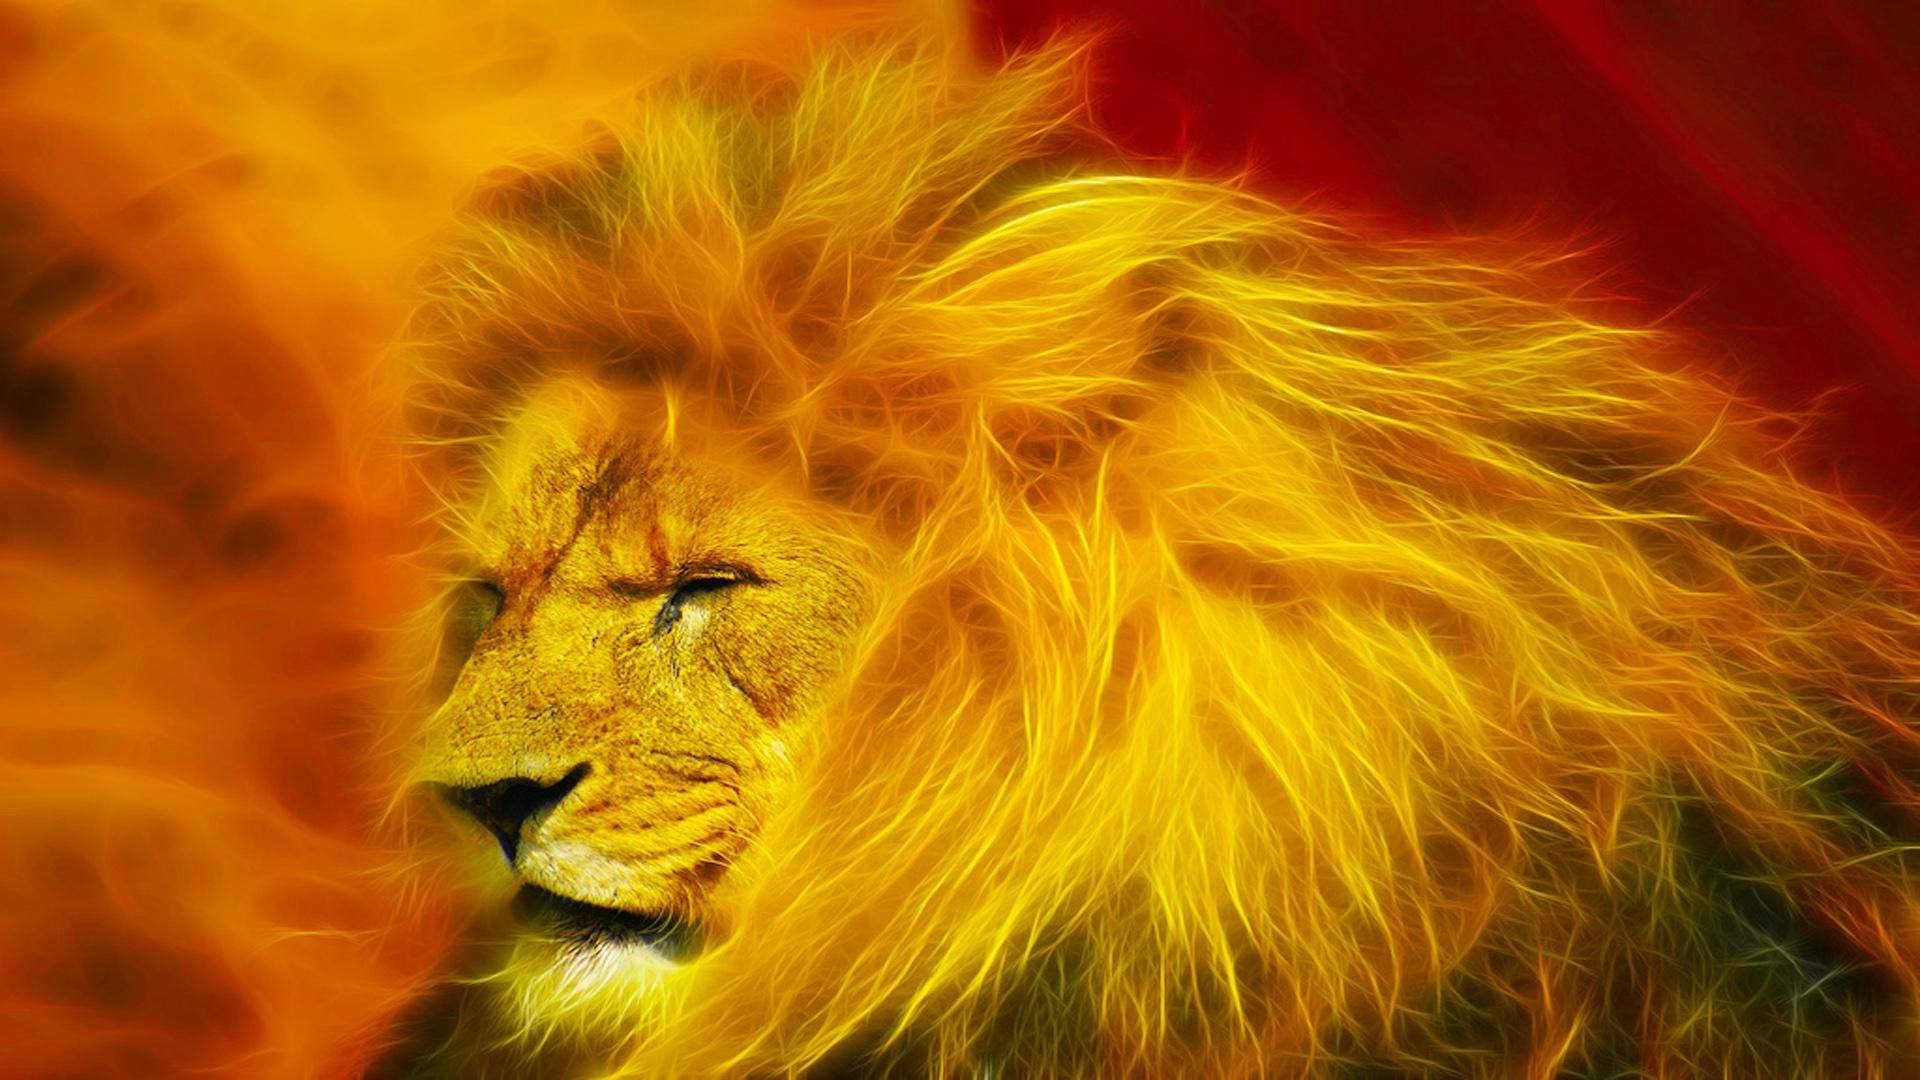 Hd wallpaper lion - Lion Hd Wallpapers Lion Hd Pictures Free Download Hd 1440 900 Picture Of A Lion